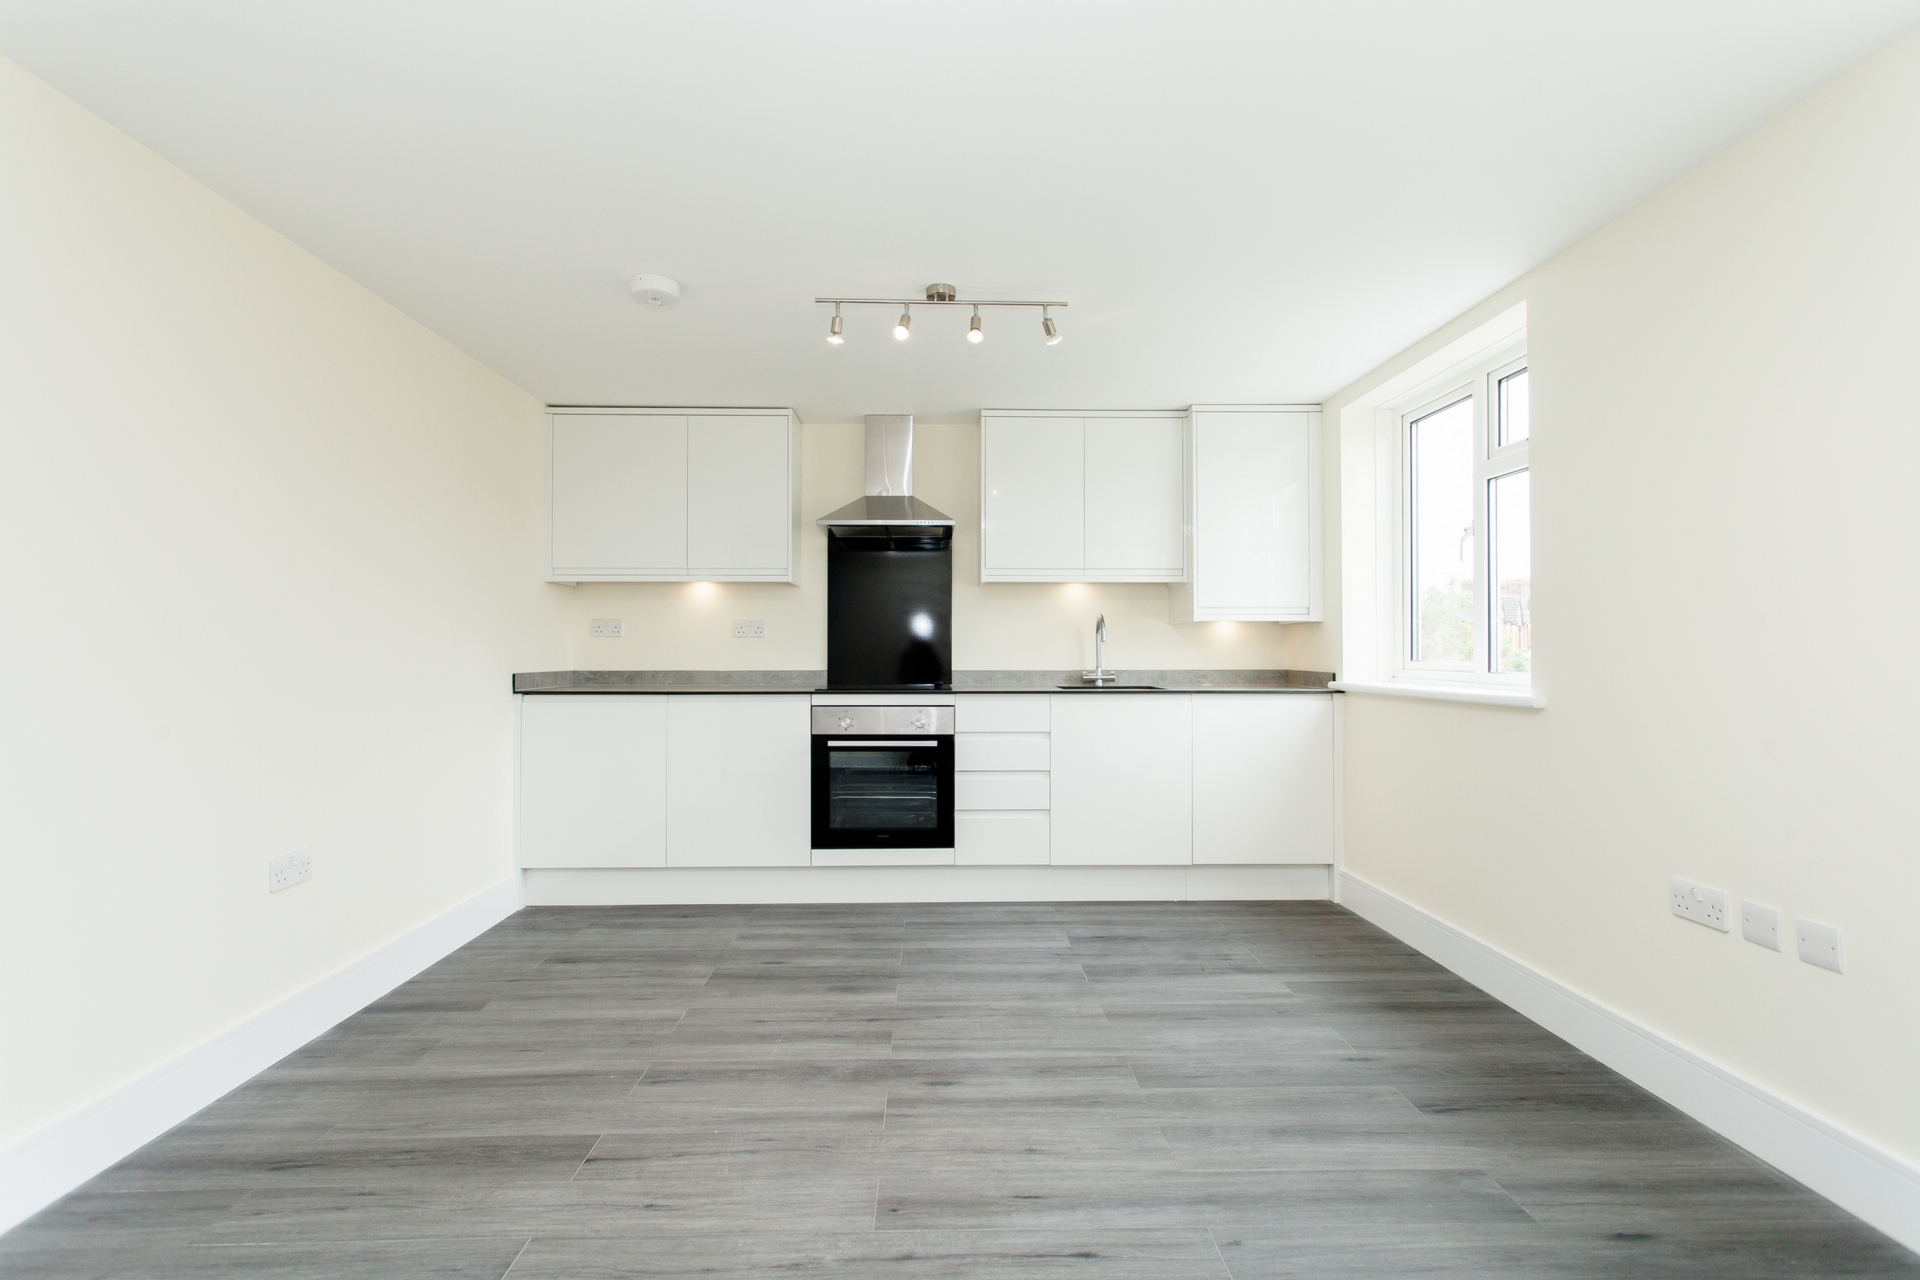 1 Bedroom Flat to rent in Crouch End, London, N8